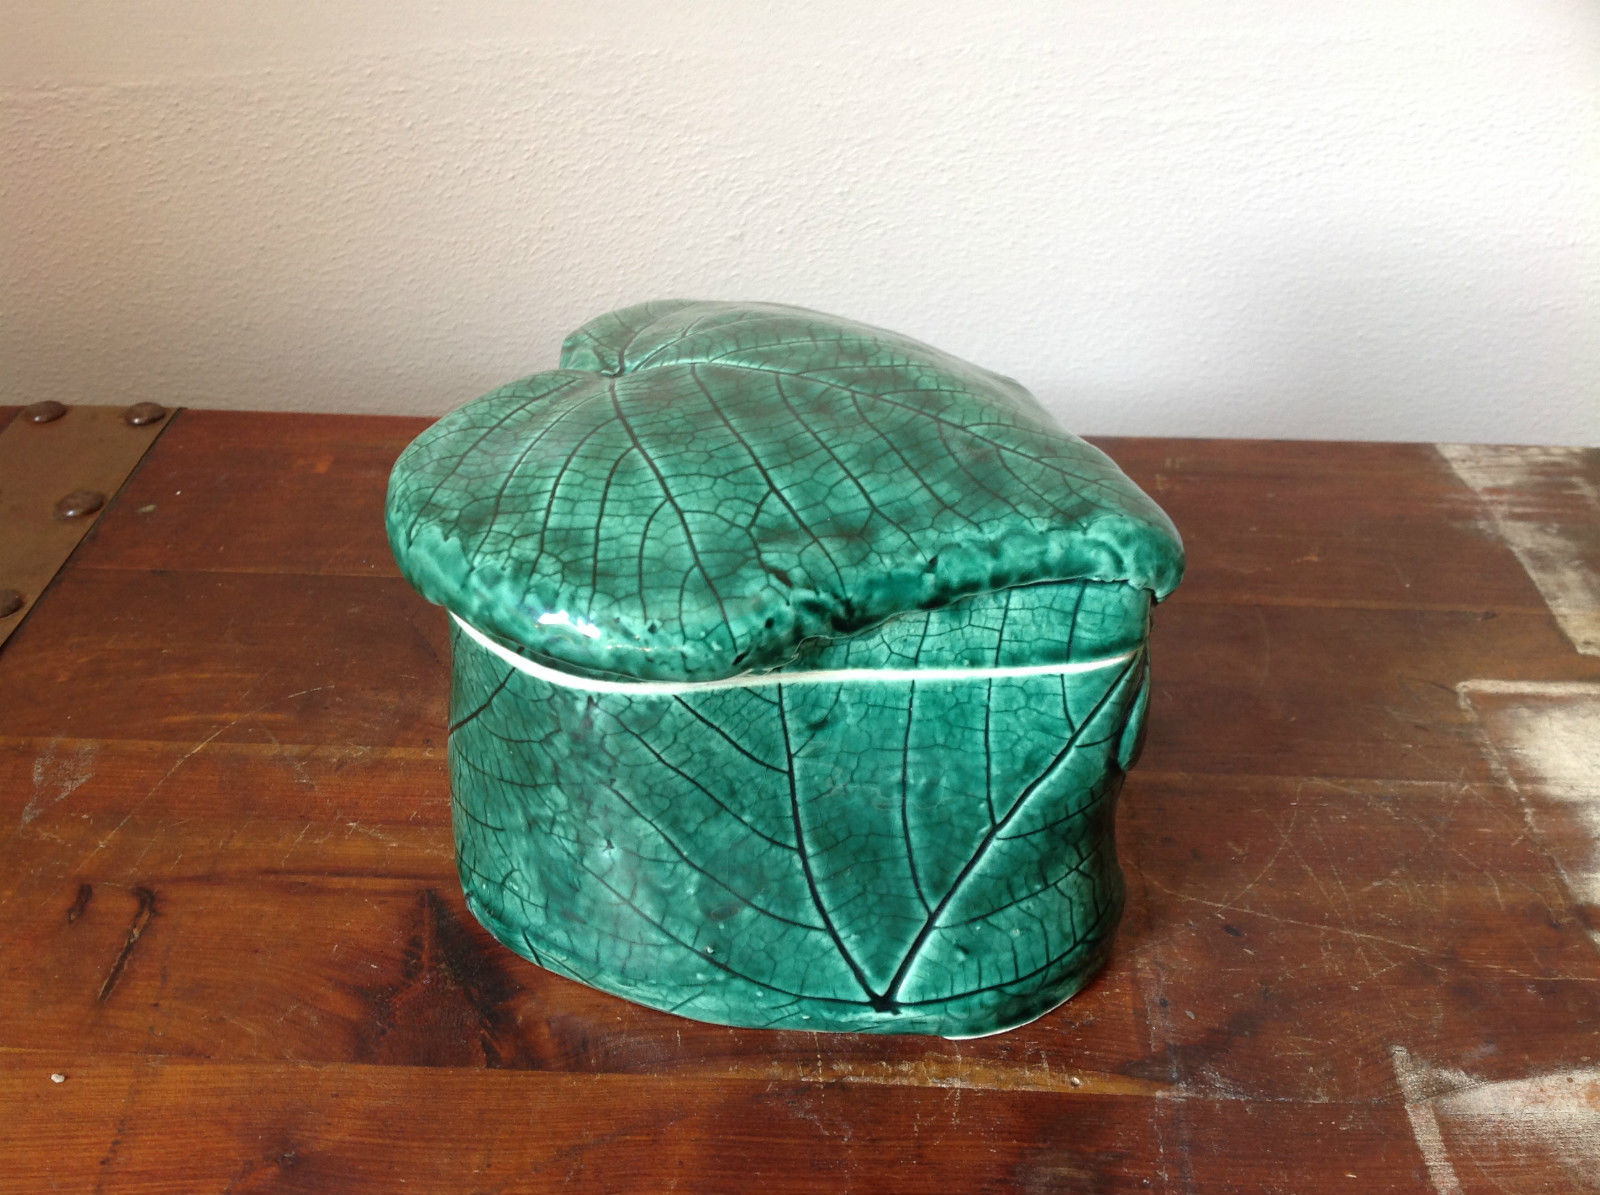 Green Grape Leaf Shaped Hand Crafted Artisan Ceramic Jar Trinket Box 2009